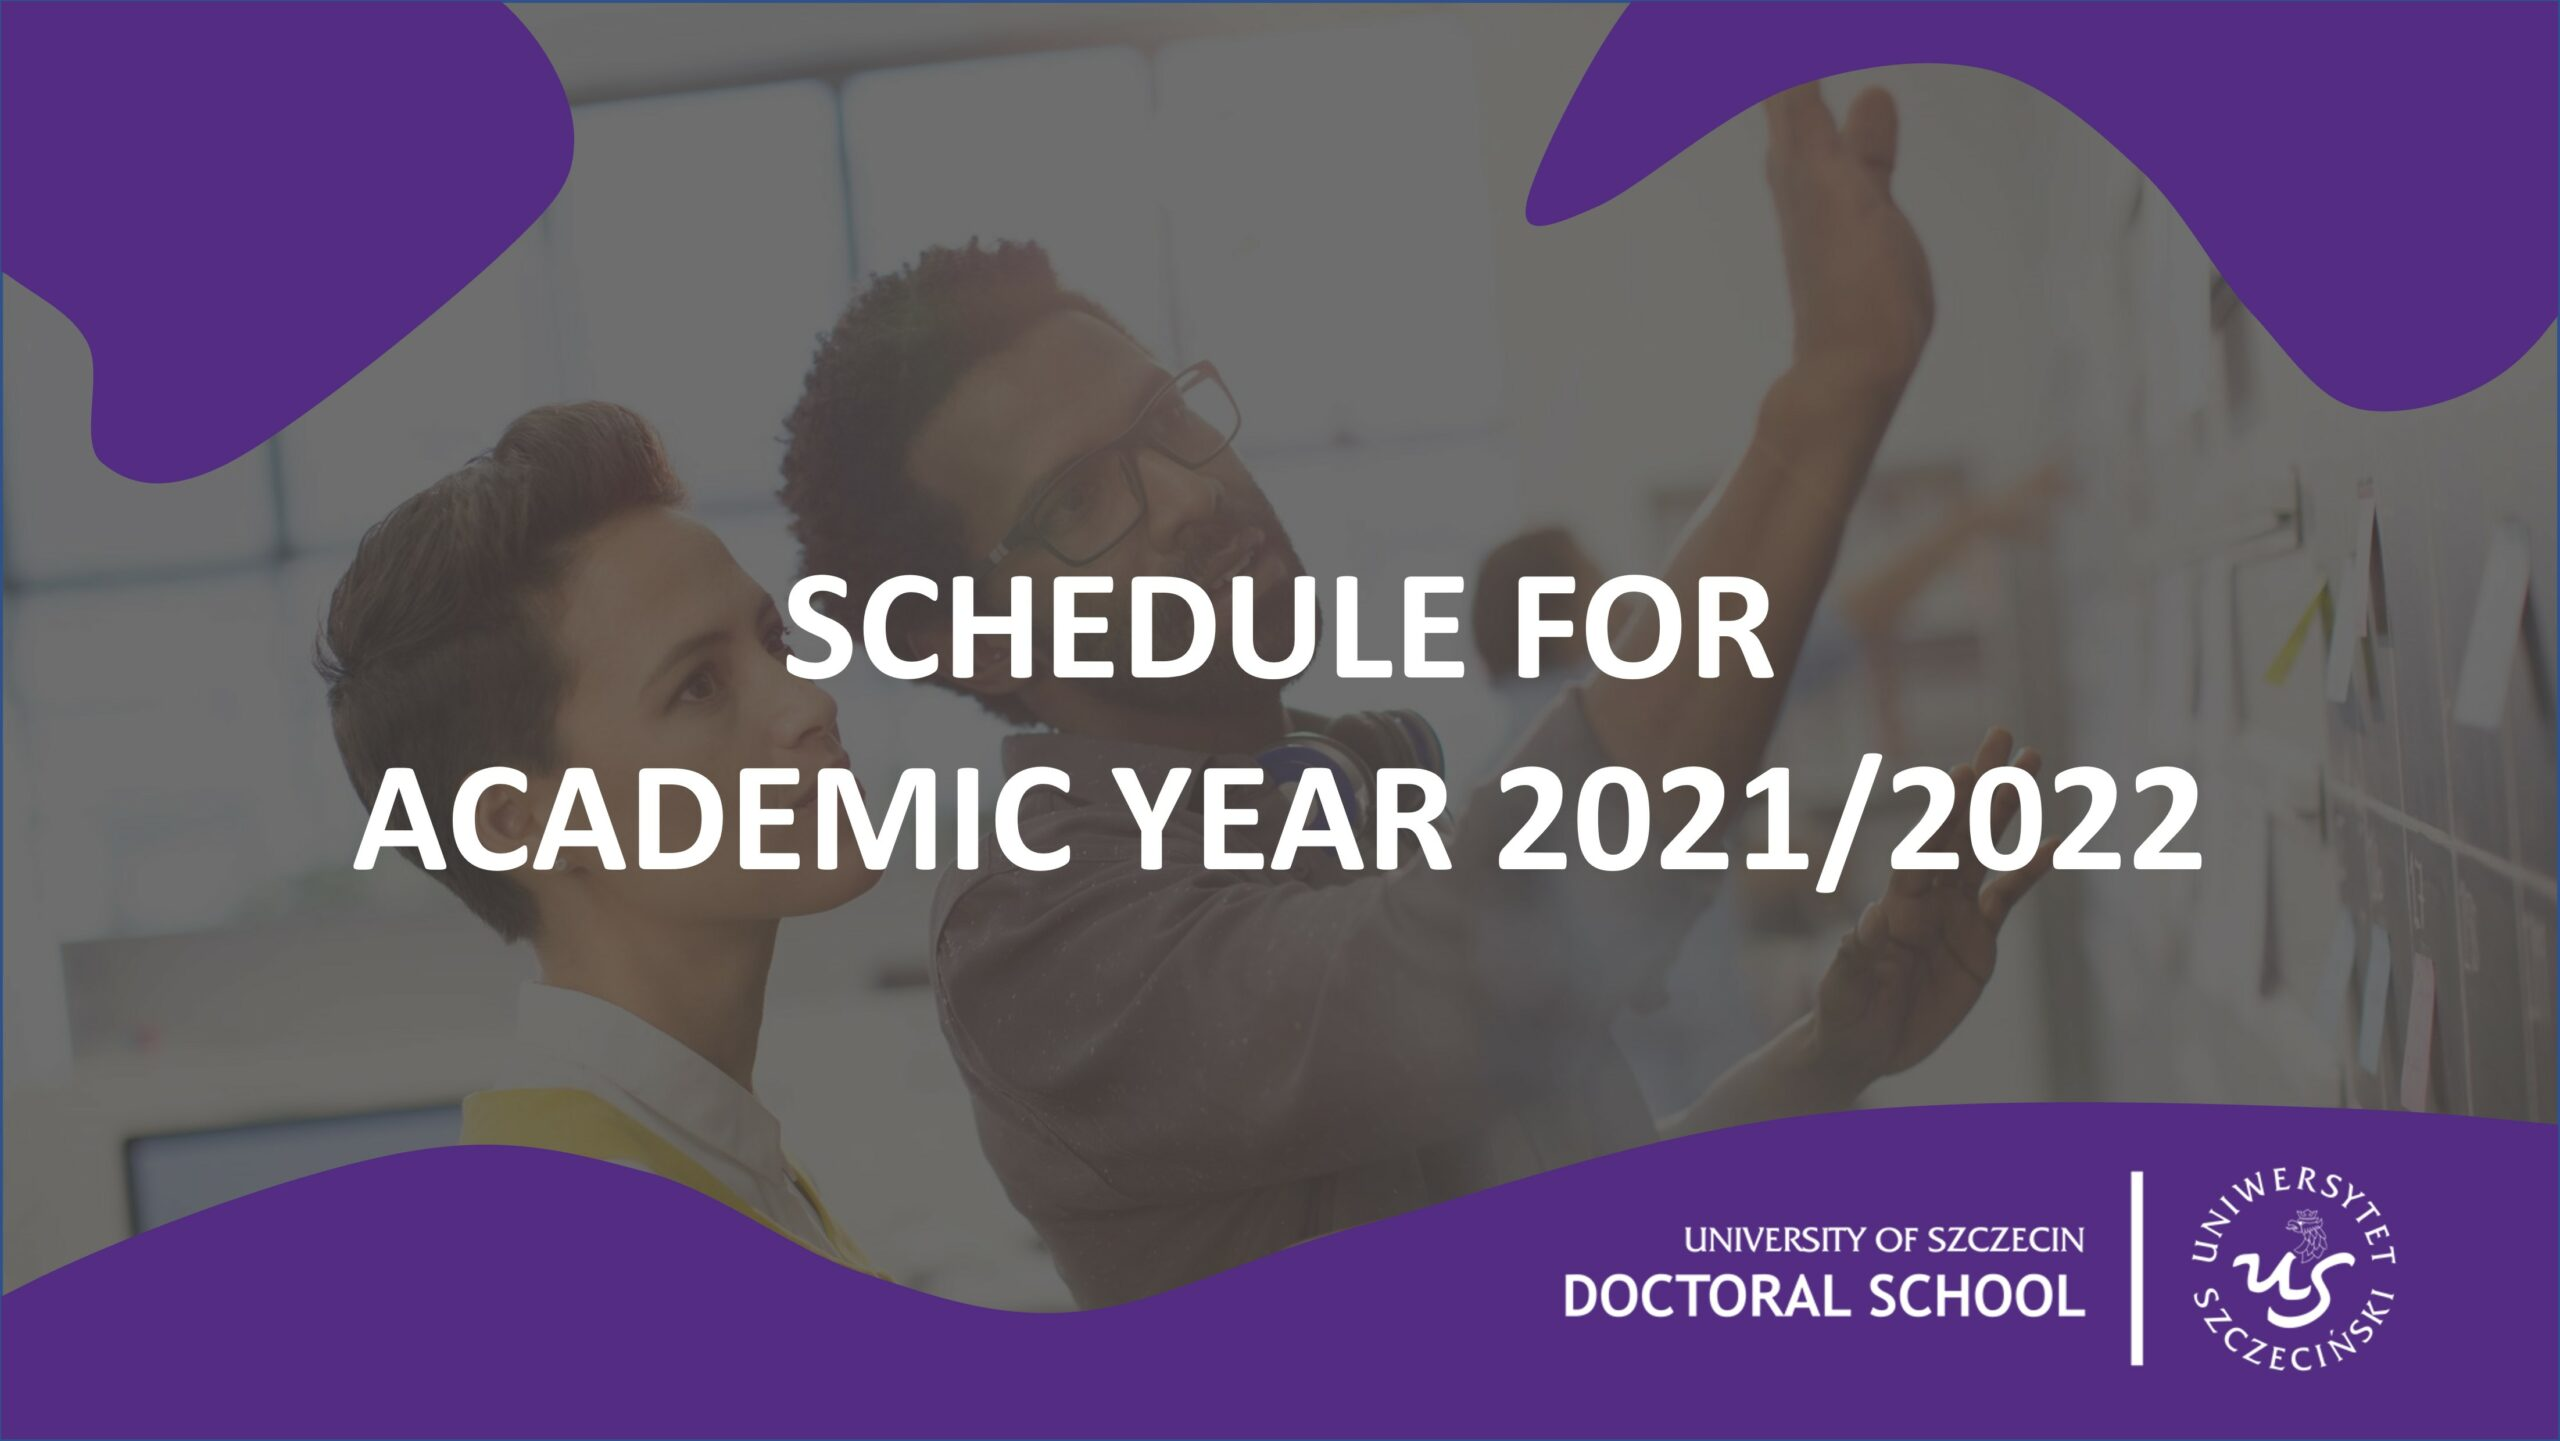 Schedule For Academic Year 2021/2022